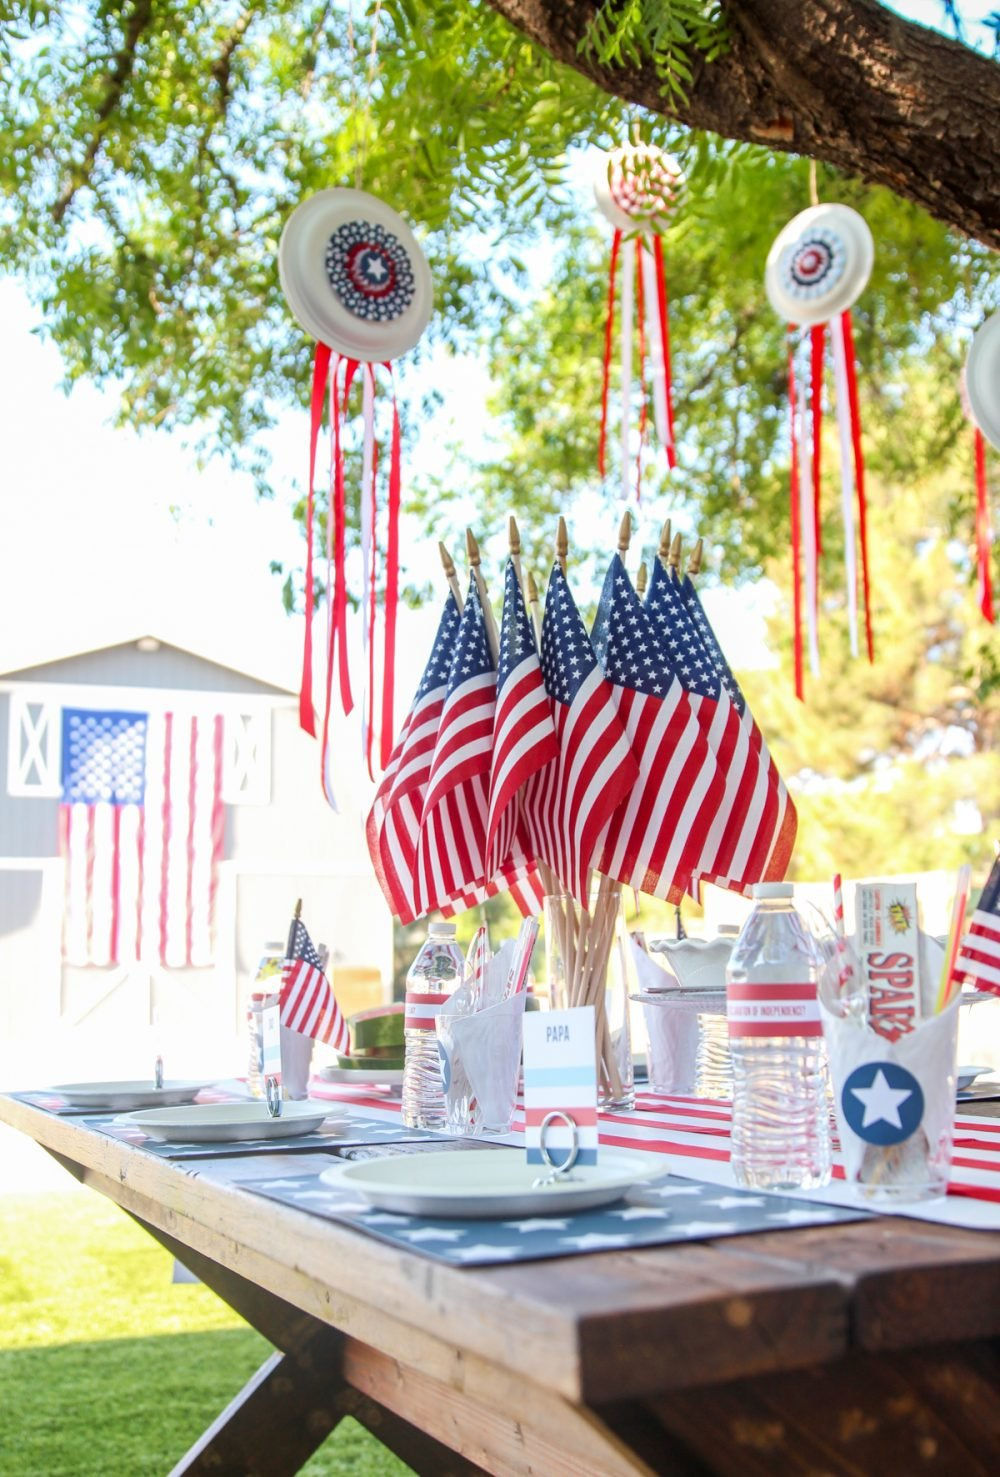 Easy July 4th Decor Ideas with free printable templates and tutorial from @PagingSupermom